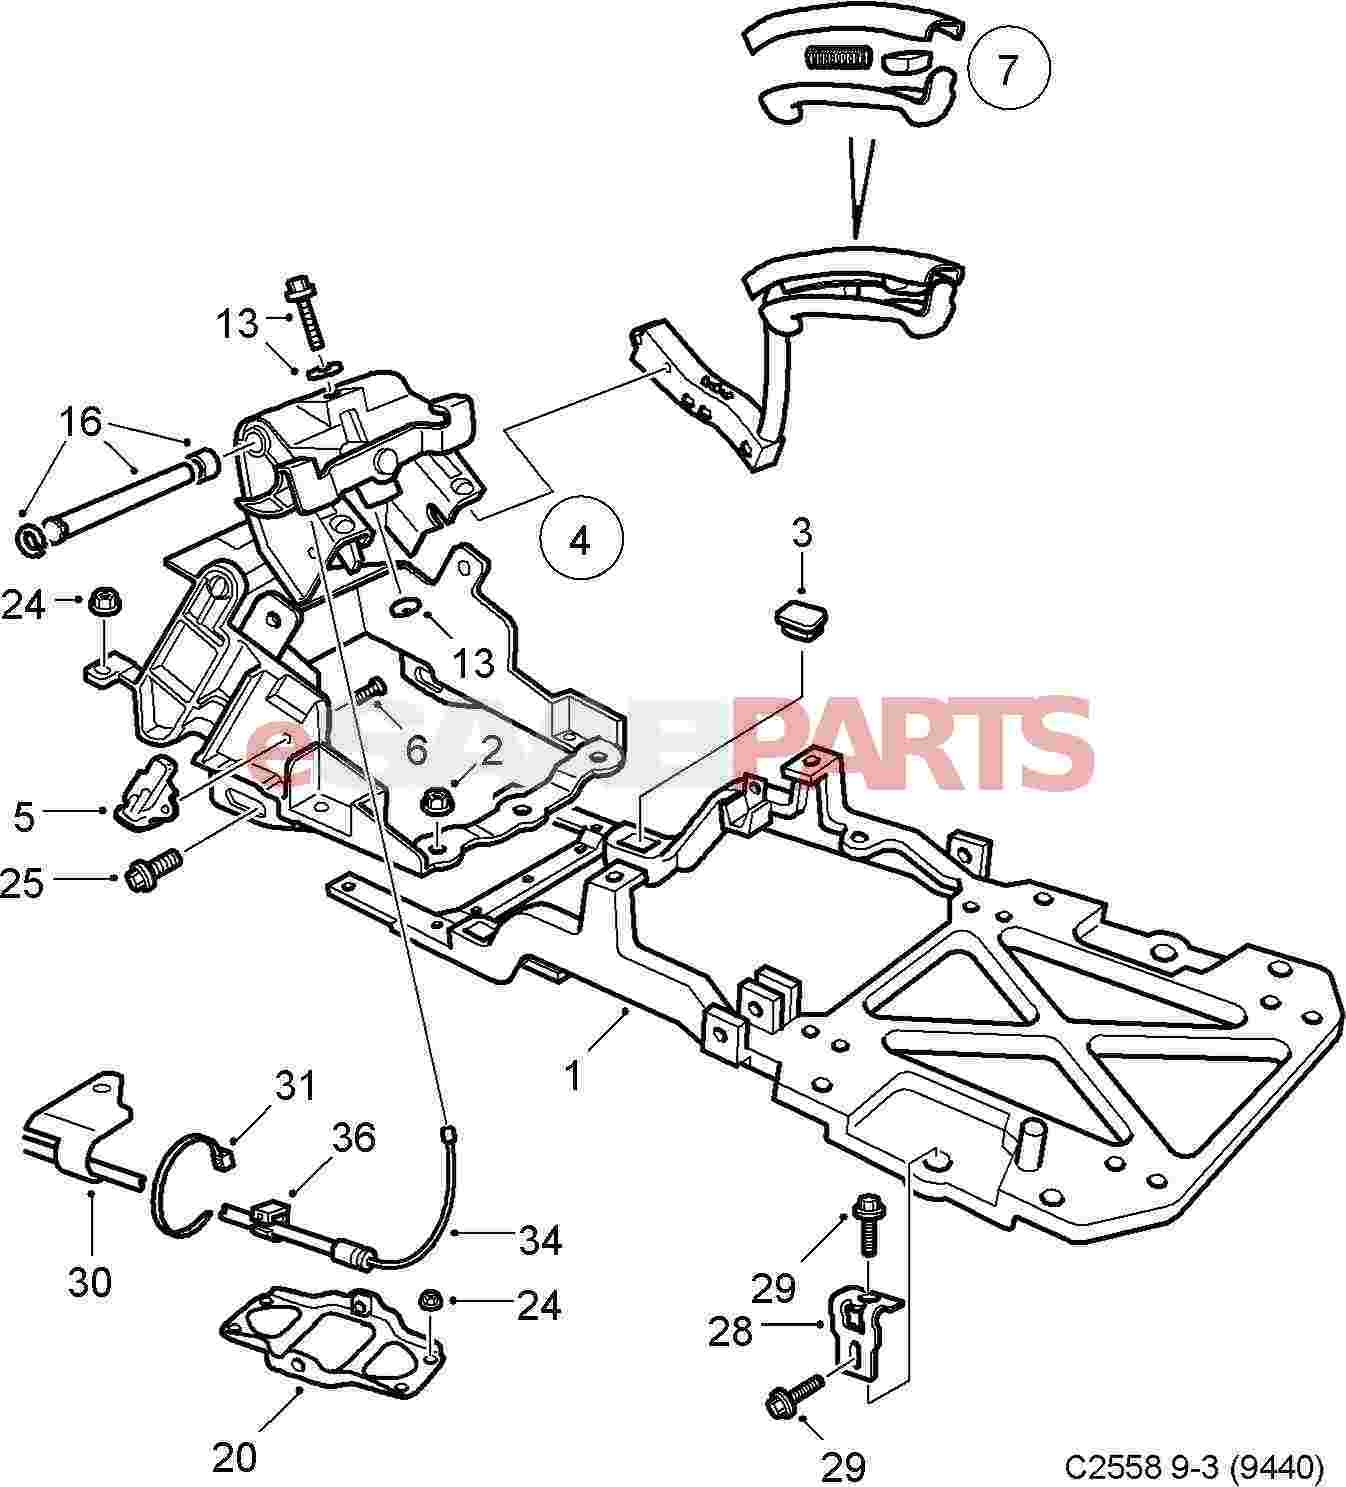 96 audi a4 stereo wiring diagram with 2004 Mazda 3 Stereo Wiring Harness Diagram on 1996 Audi A6 Engine Performance 20 besides 2004 Mazda 3 Stereo Wiring Harness Diagram moreover 2004 Impala Radio Wiring Schematics furthermore Hhr Radio Wiring Diagram as well Audi A4 B5 Wiring Diagram.